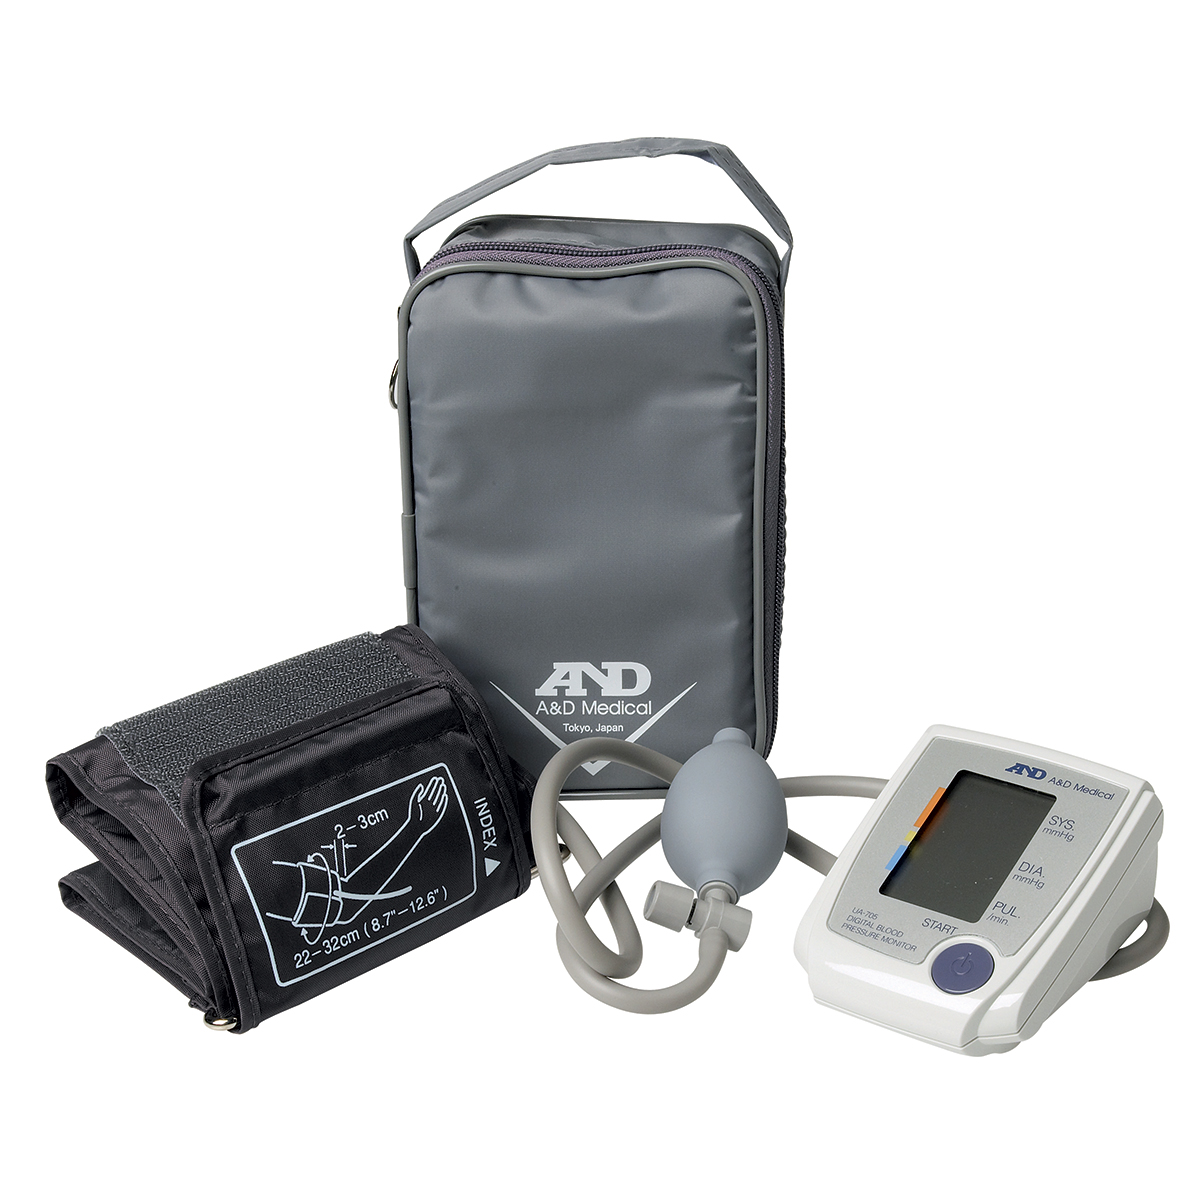 Semi-Automatic Digital Blood Pressure Monitor